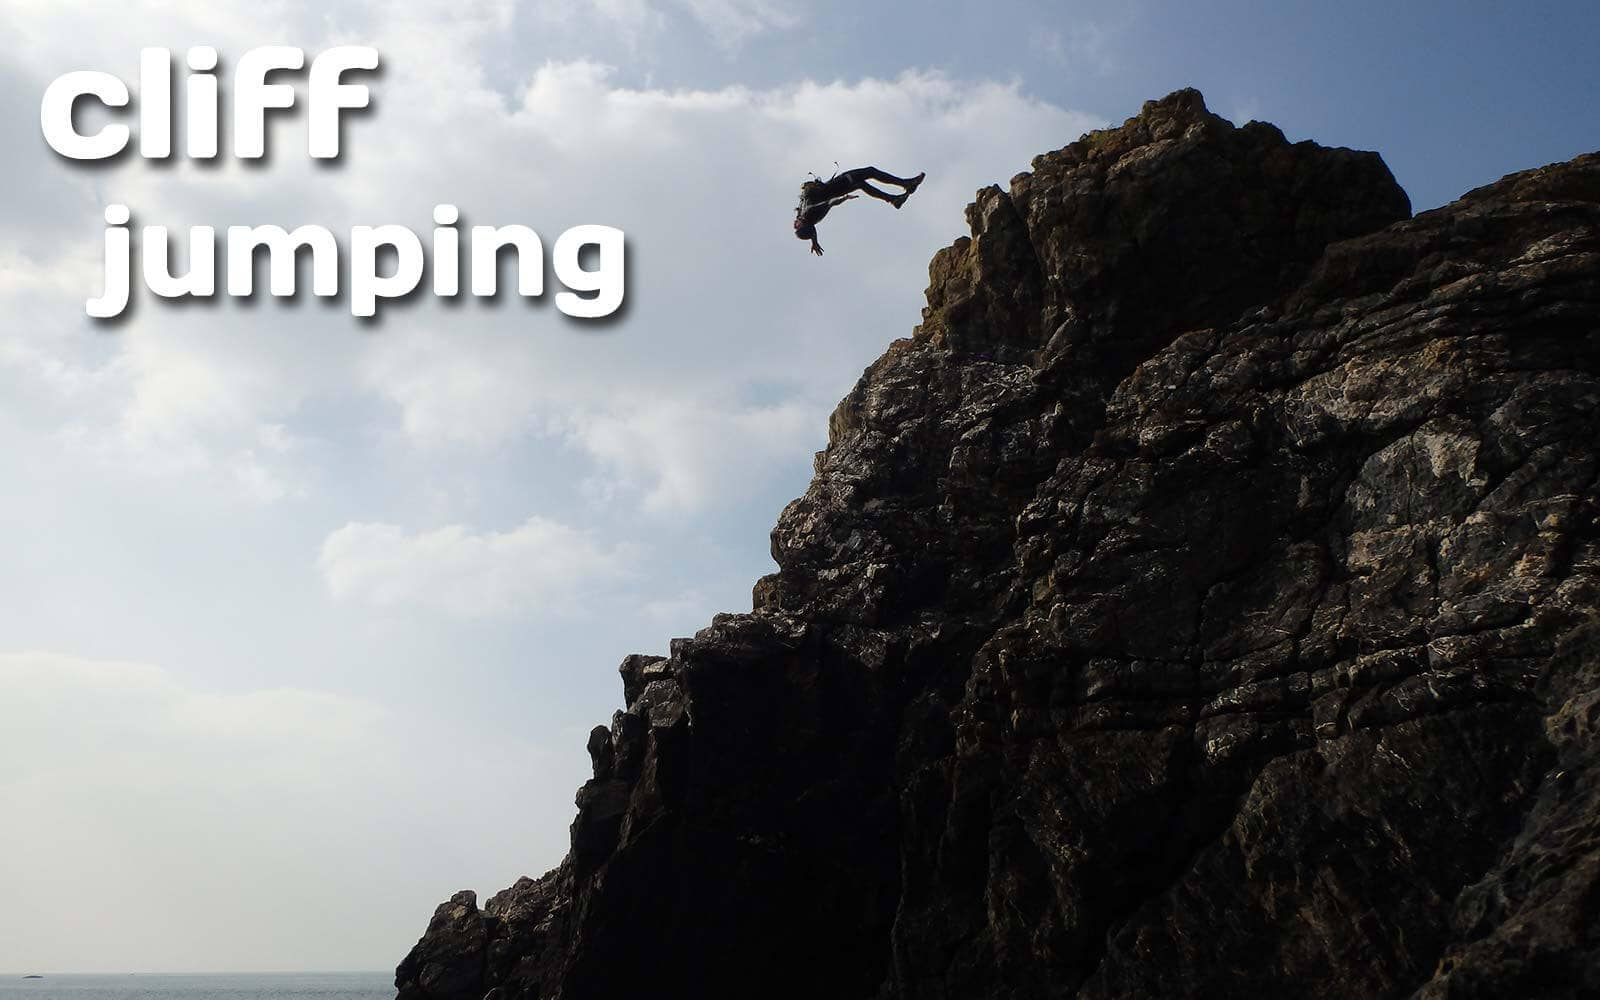 Coasteering cliff jumping from 10m, giant back flip from the headland at Abereiddy bay, Pembrokeshire Wales